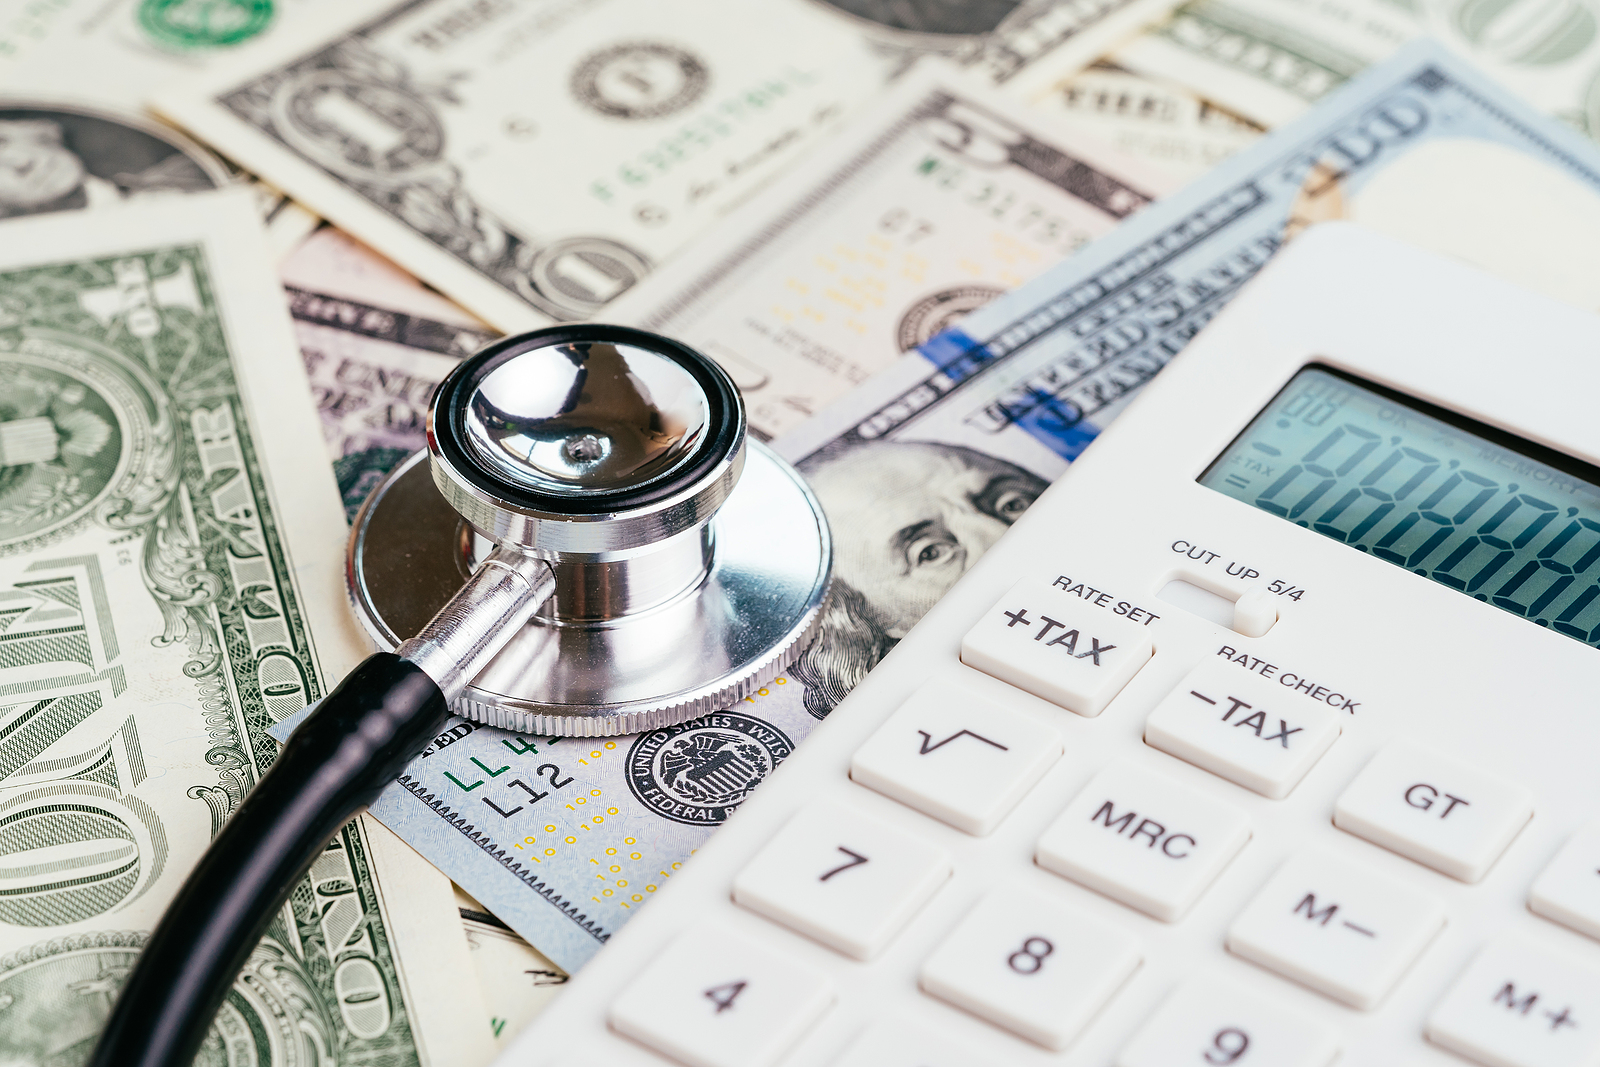 Doctor-Stethoscope-Placed-on-Pile-of-US-Dollar-Bills-Next-to-Calculator